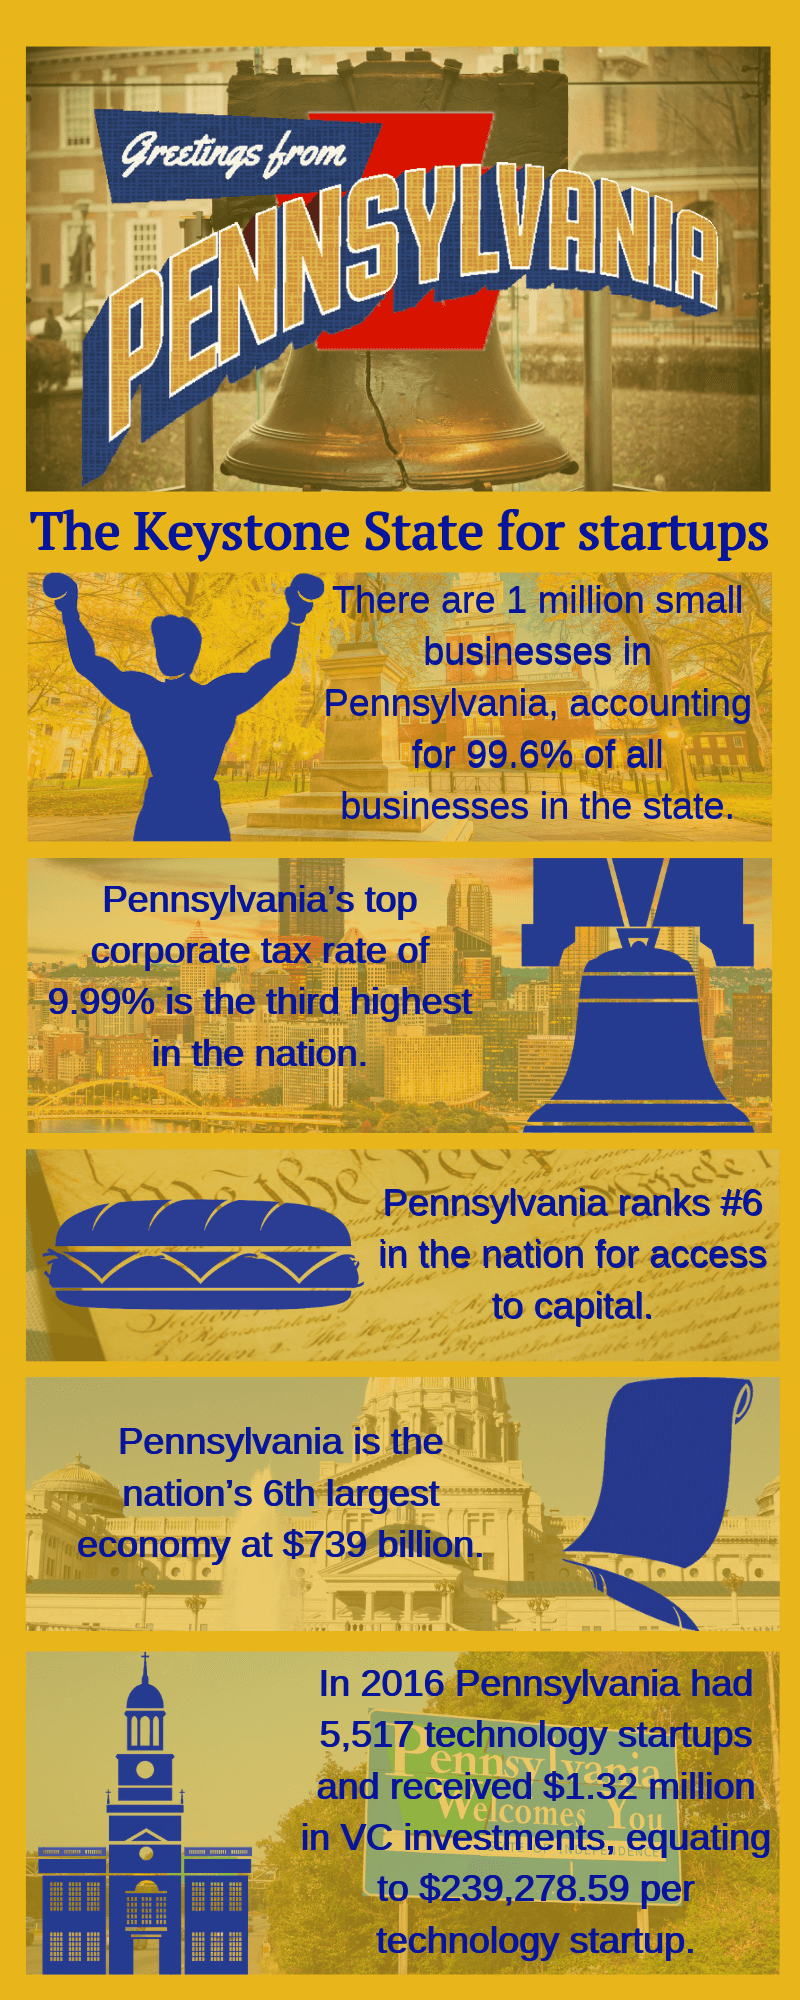 pennsylvania startup small business statistics infographic